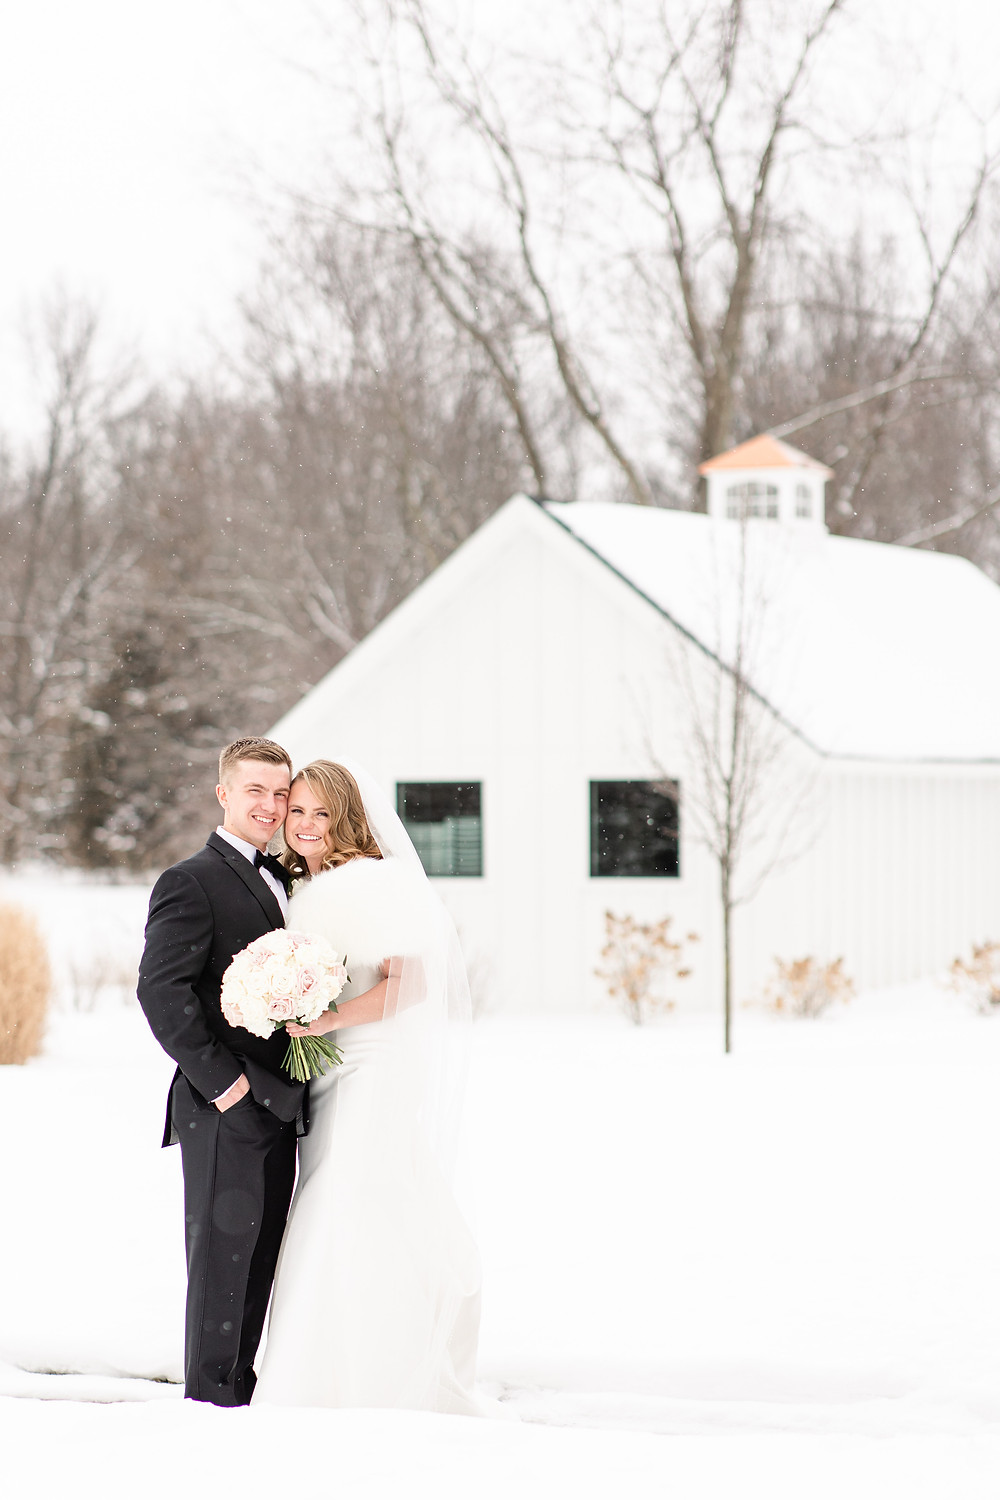 Josh and Andrea wedding photography husband and wife photographer team michigan venue Bay Pointe Woods shelbyville snow winter wedding bride and groom smiling